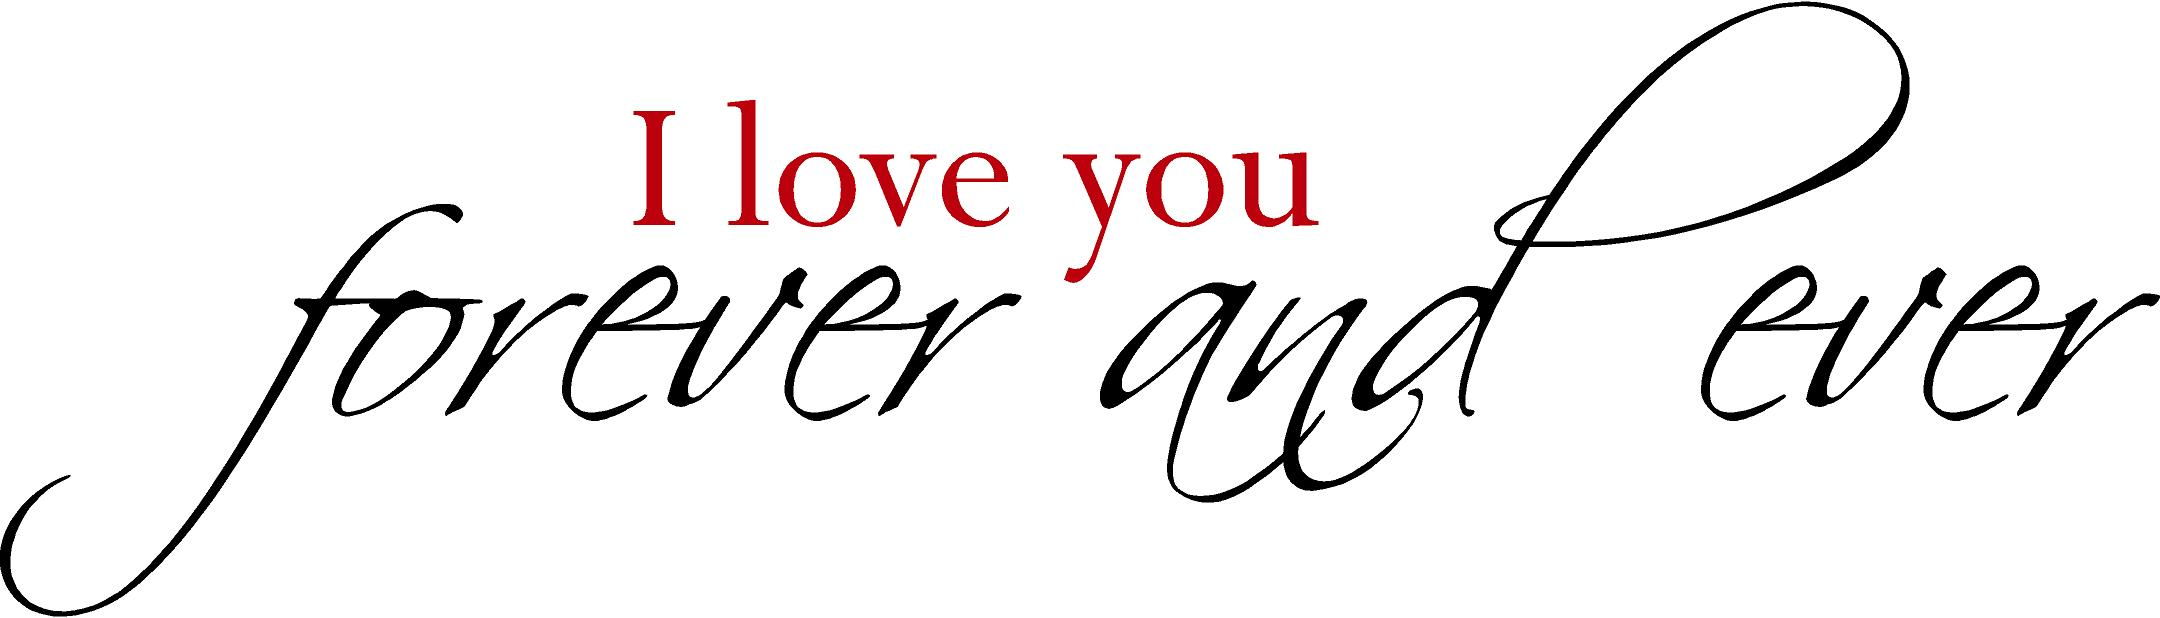 Wallpaper Love You Forever : I Love You Forever And Ever Header Wallpaper - NiceWishes